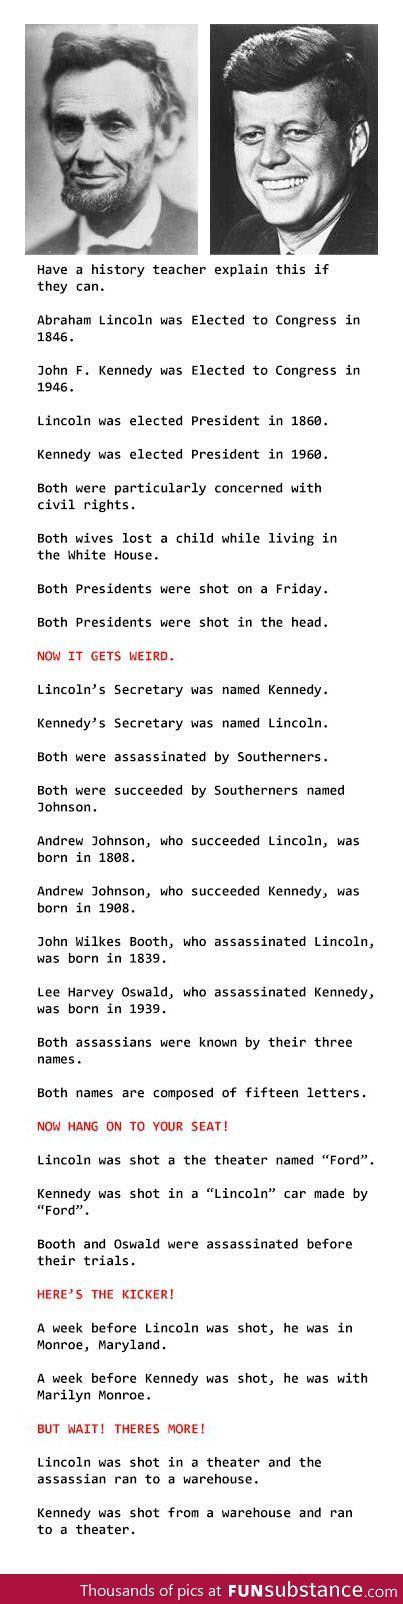 Mind blowing coincidences on Lincoln and Kennedy's deaths.